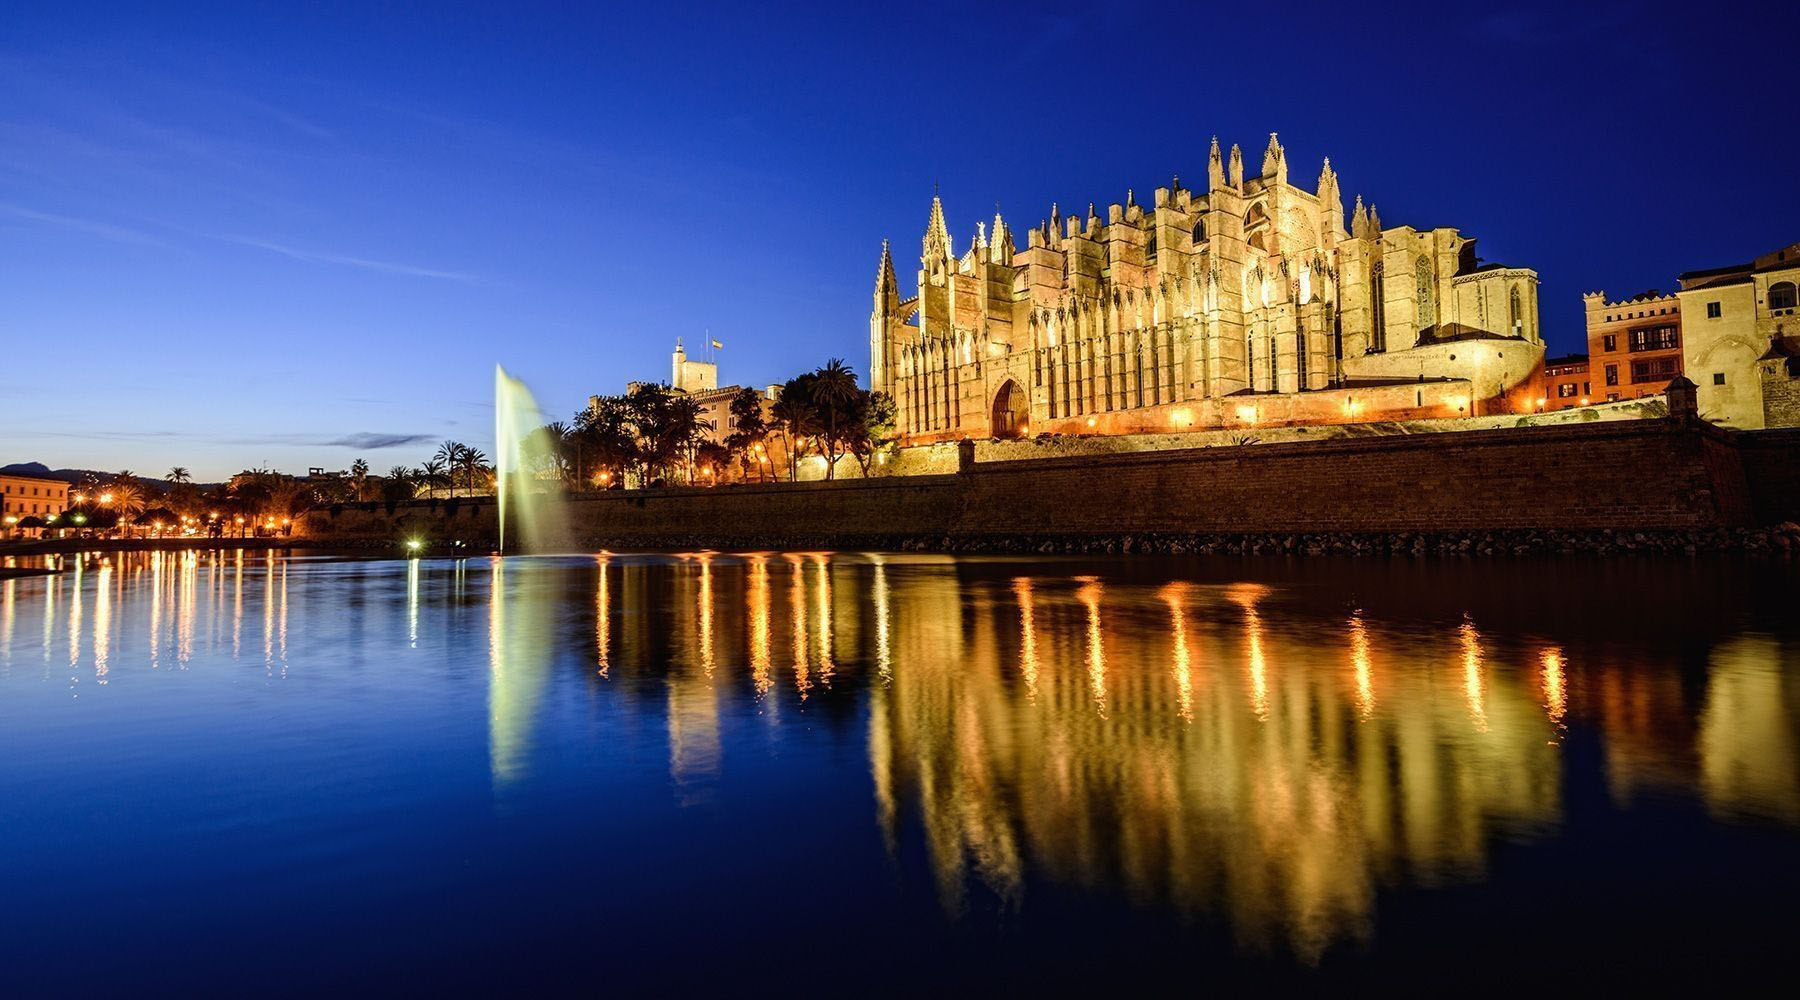 brown museum beside body of water during sunset in palma de mallorca spain